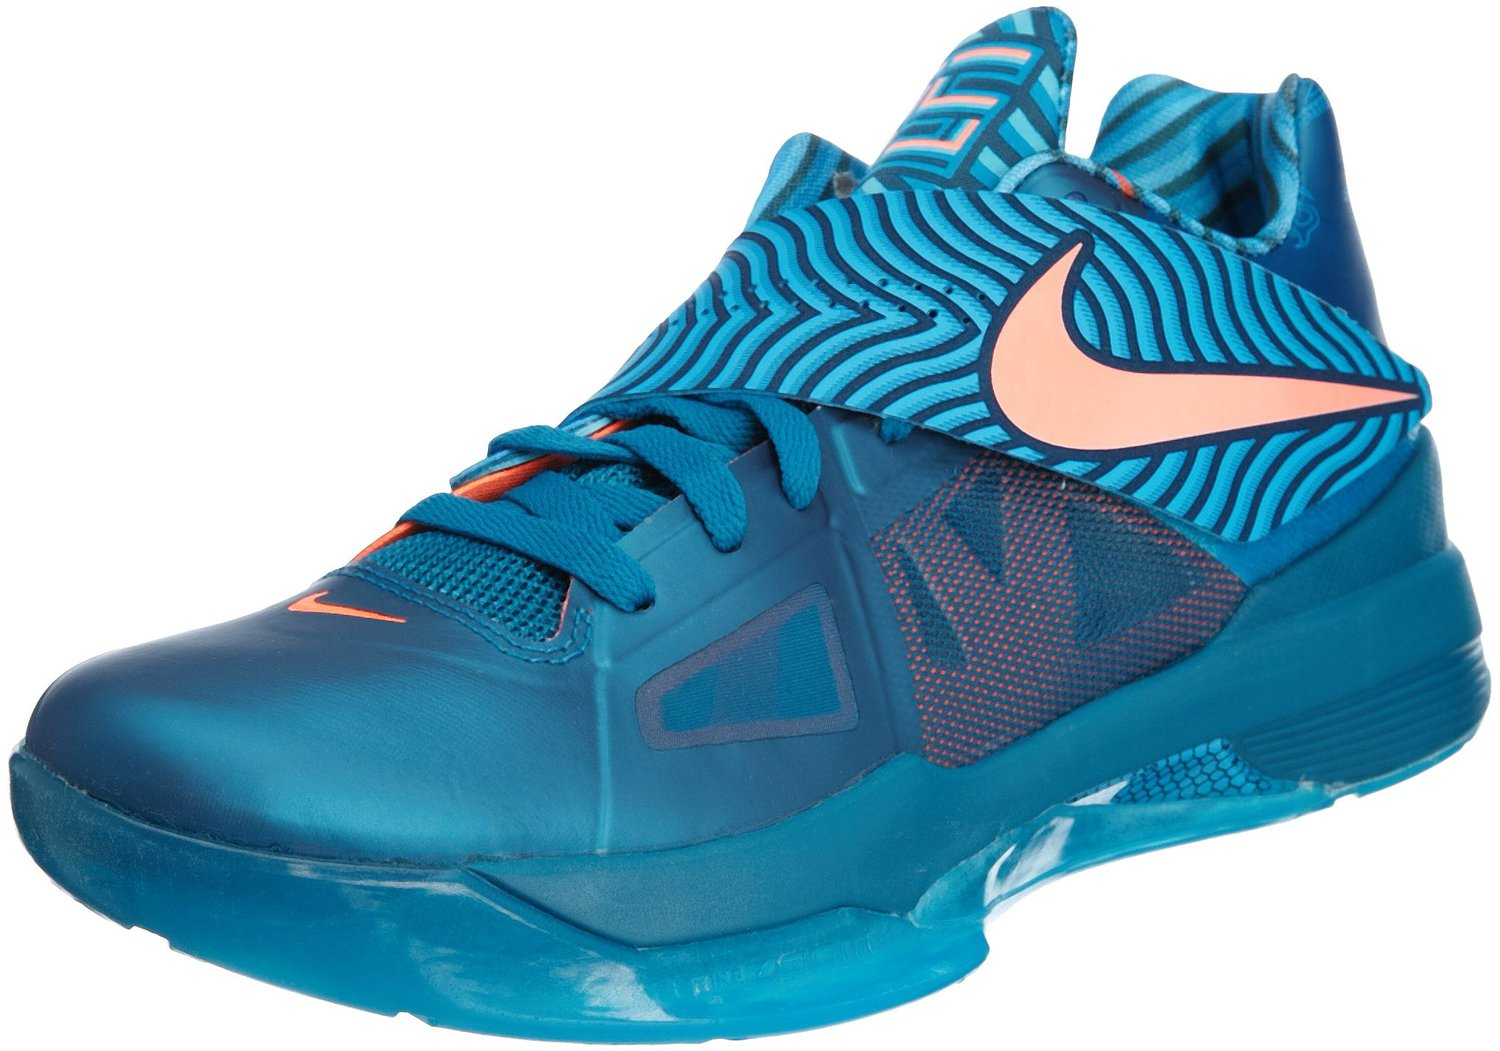 793acda5a8f9 Buy Nike Zoom Kd Iv Pink Fire Metallic Silver (473679-601) in Cheap ...